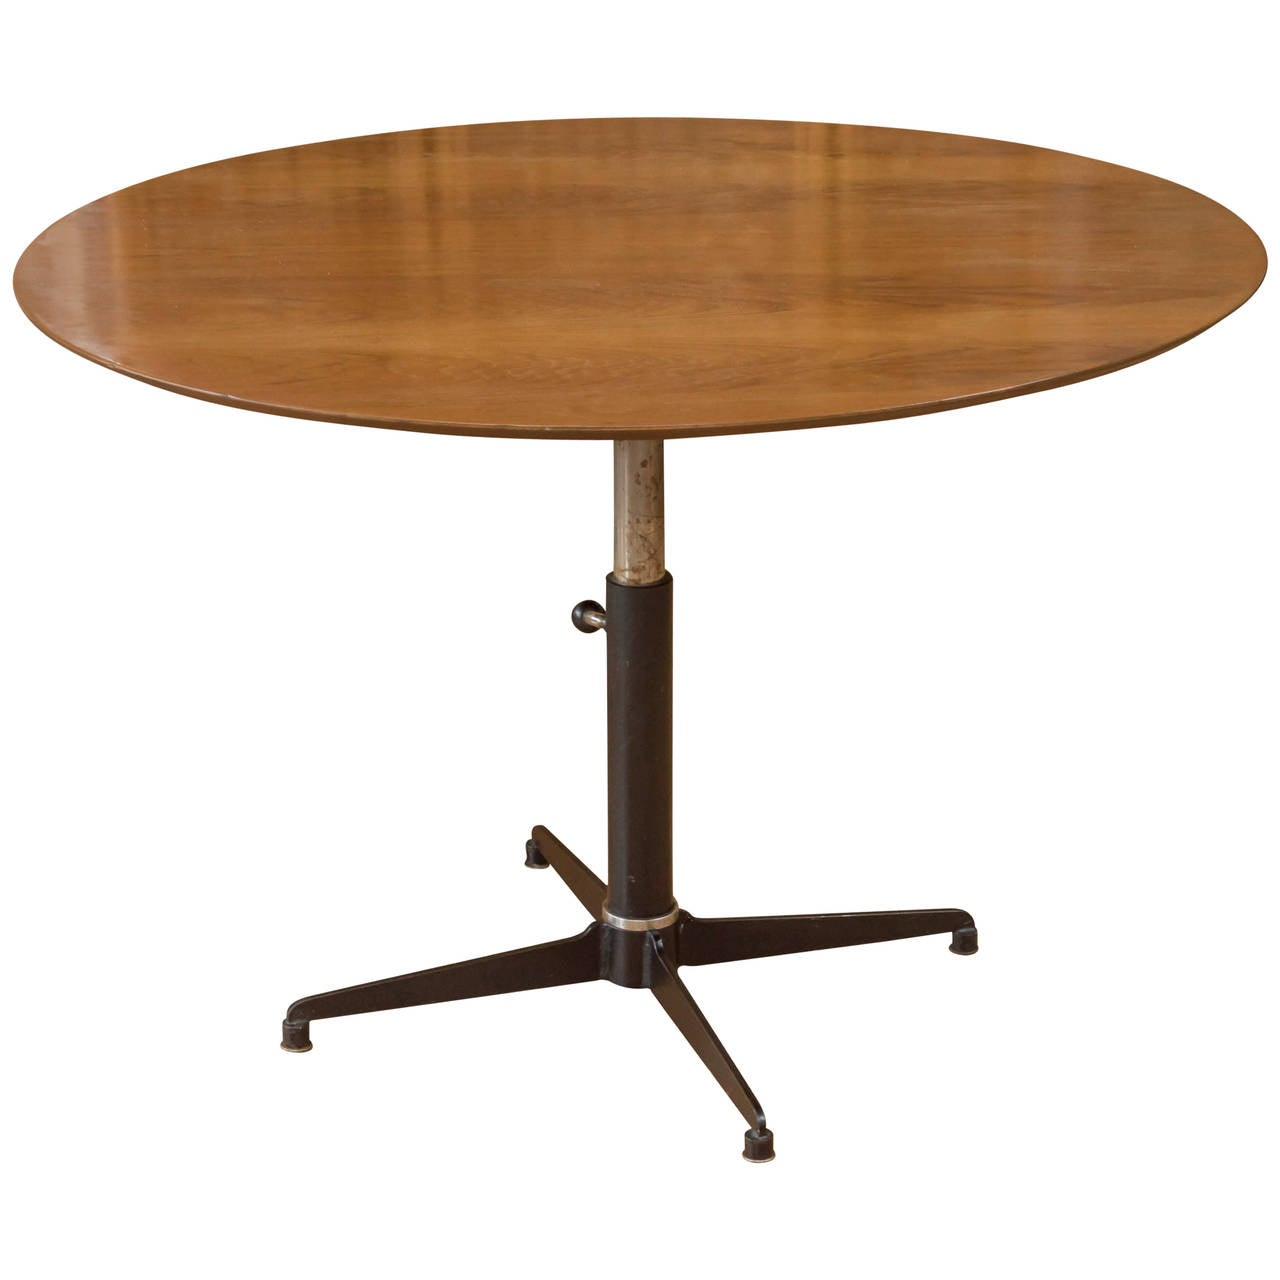 Danish teak adjustable height cocktail table for sale at for Cocktail tables